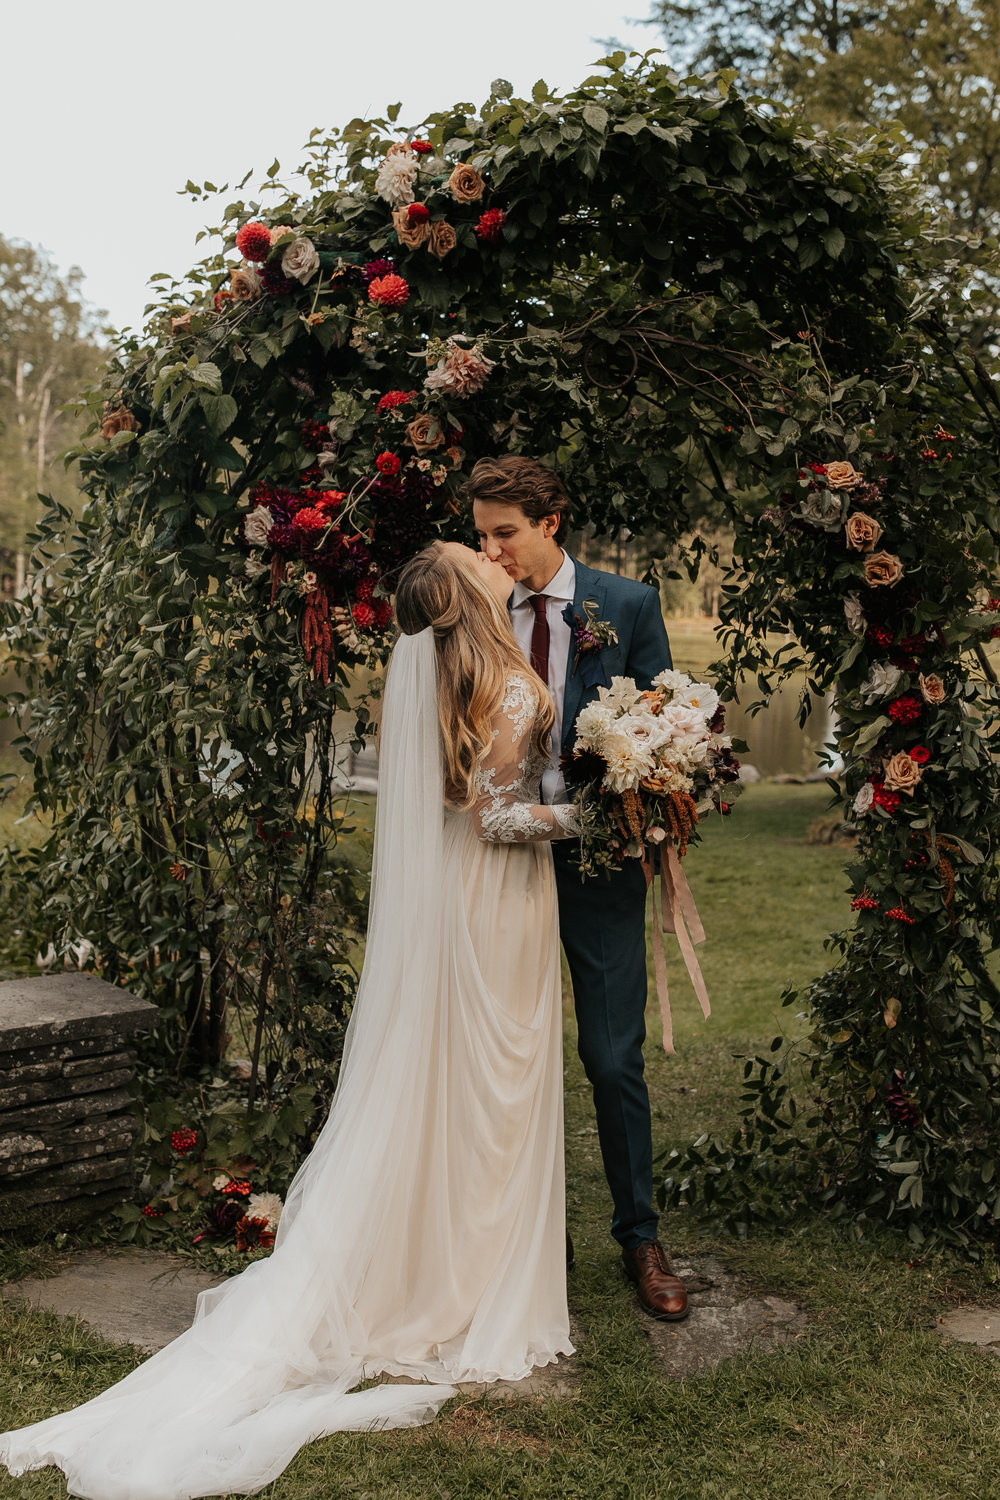 Hilary + Clay's Stowe, Vermont Wedding - If You're Planning a Boho Chic Wedding, Look No Further Than This Post for Inspiration.